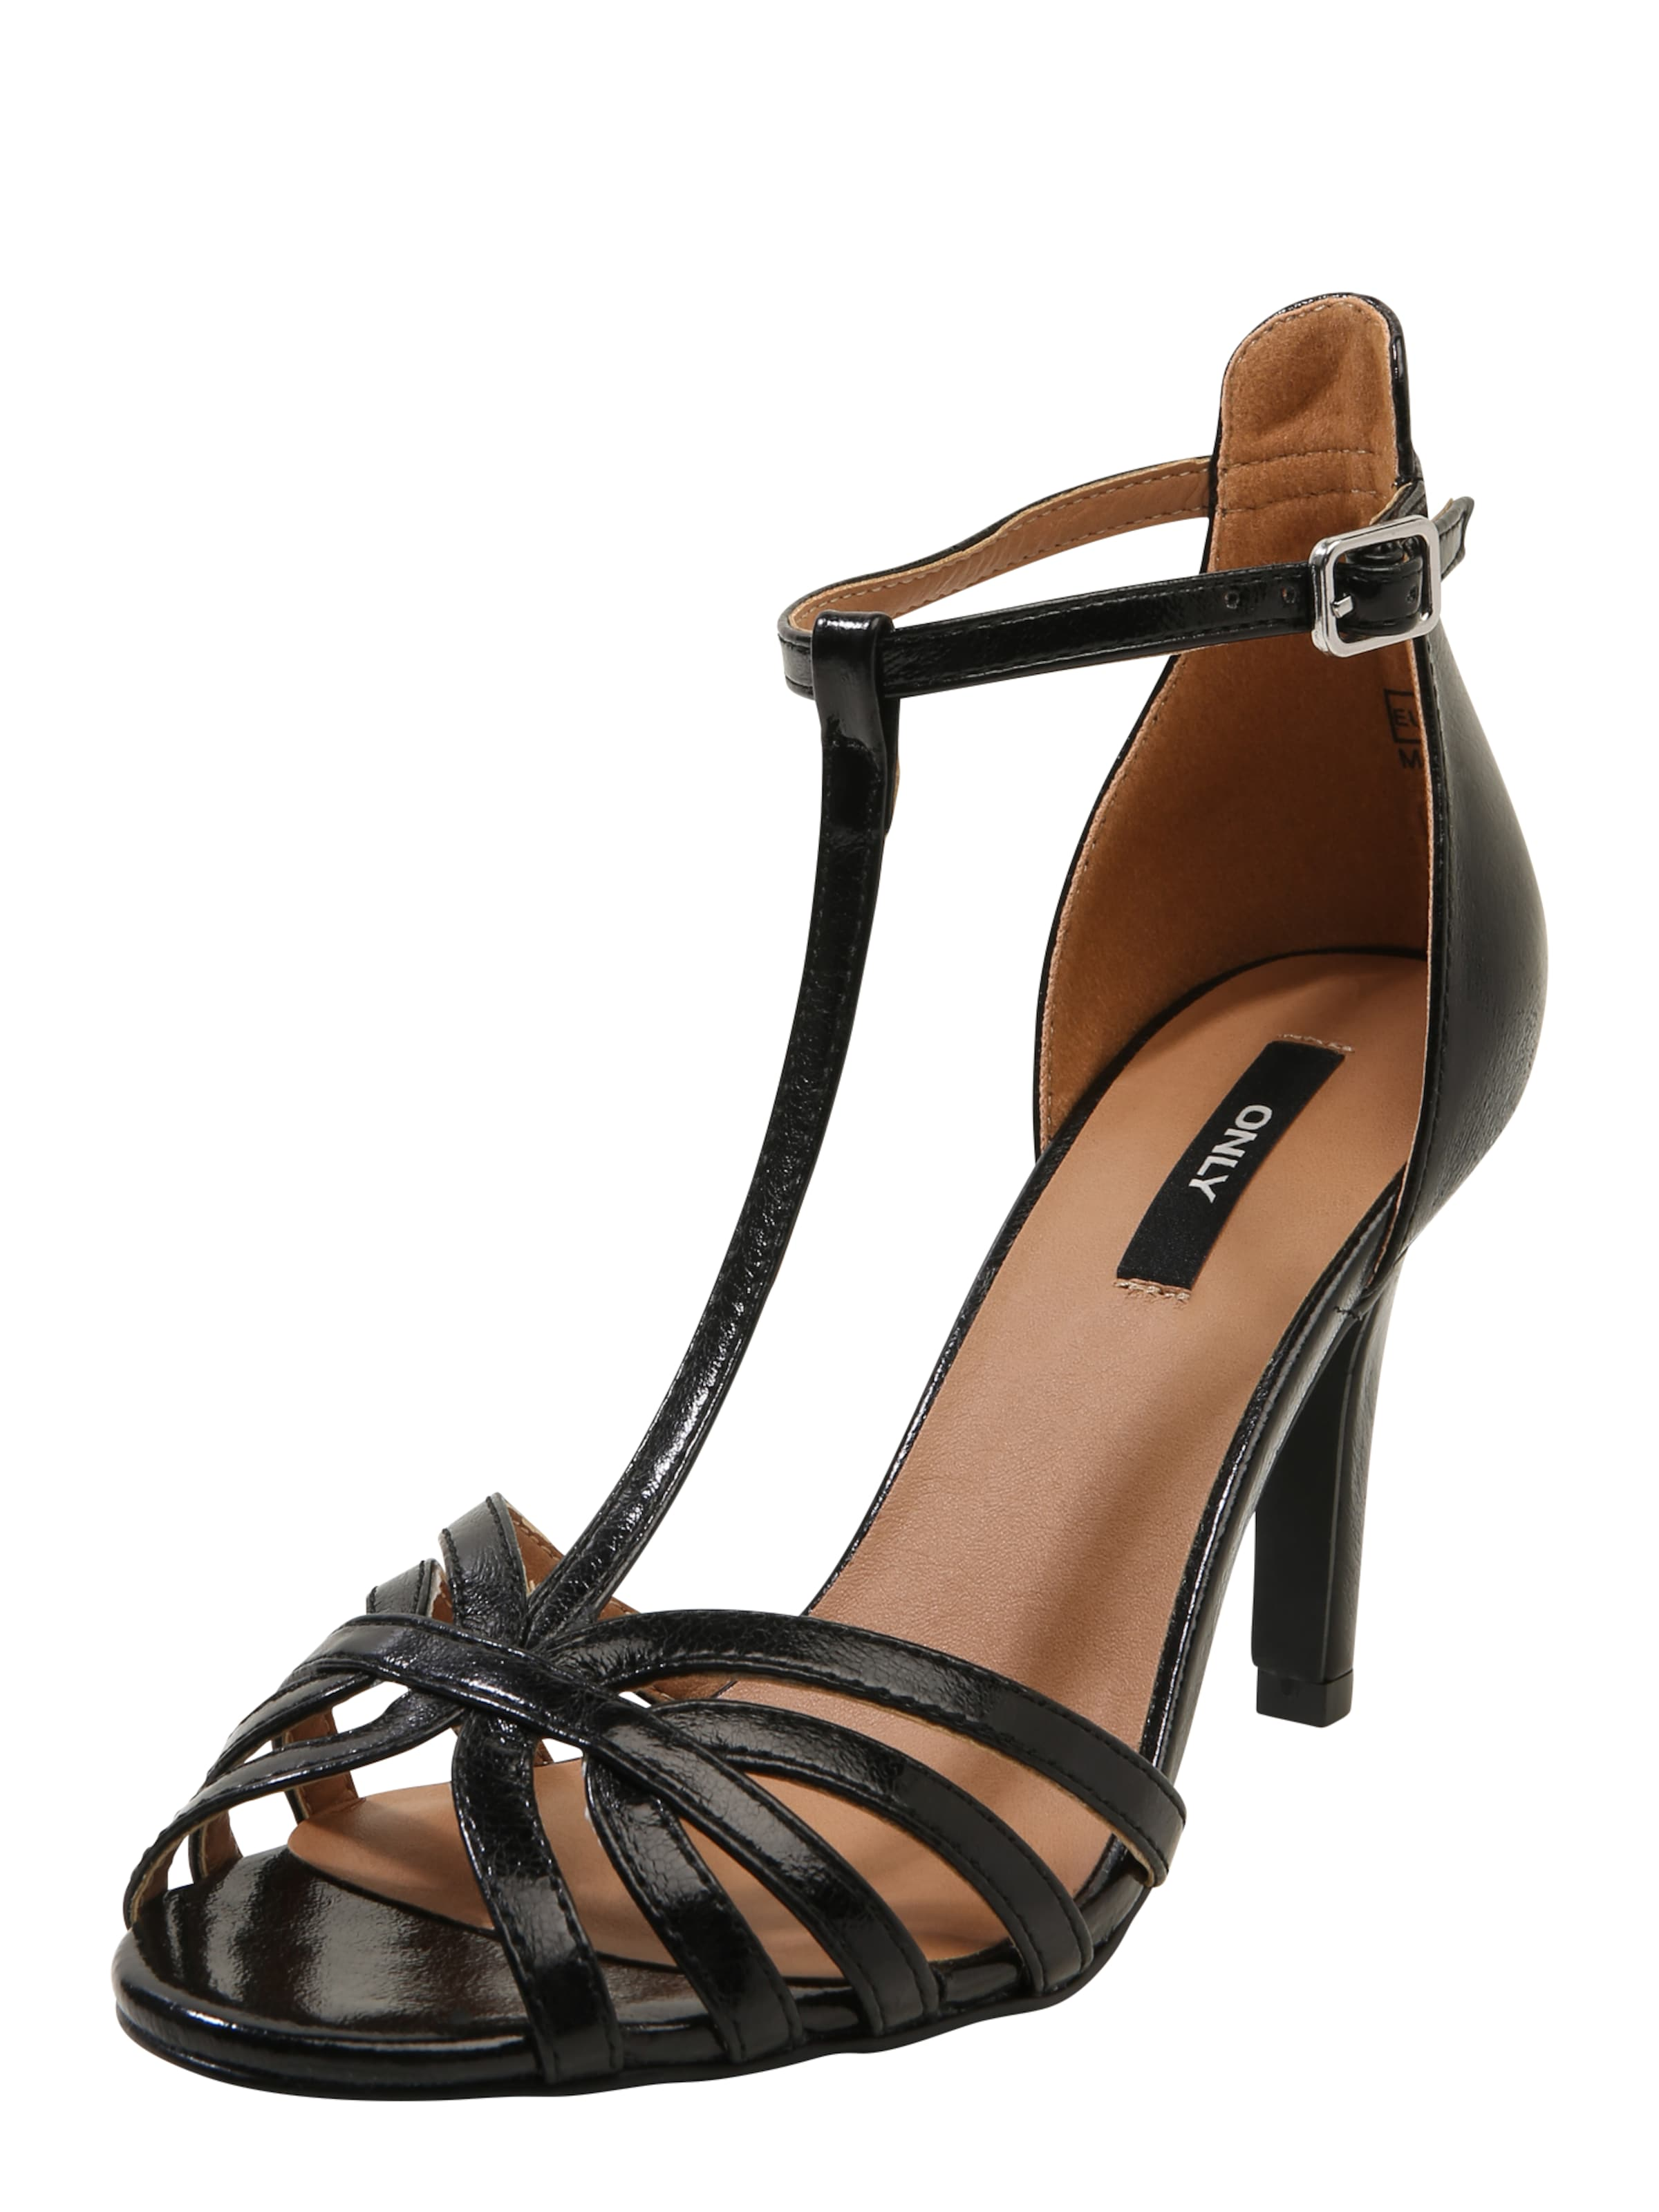 ONLY 'ABBY Sandalette SANDAL' ONLY Stiletto PU Stiletto HEELED 5wSPS1qIW